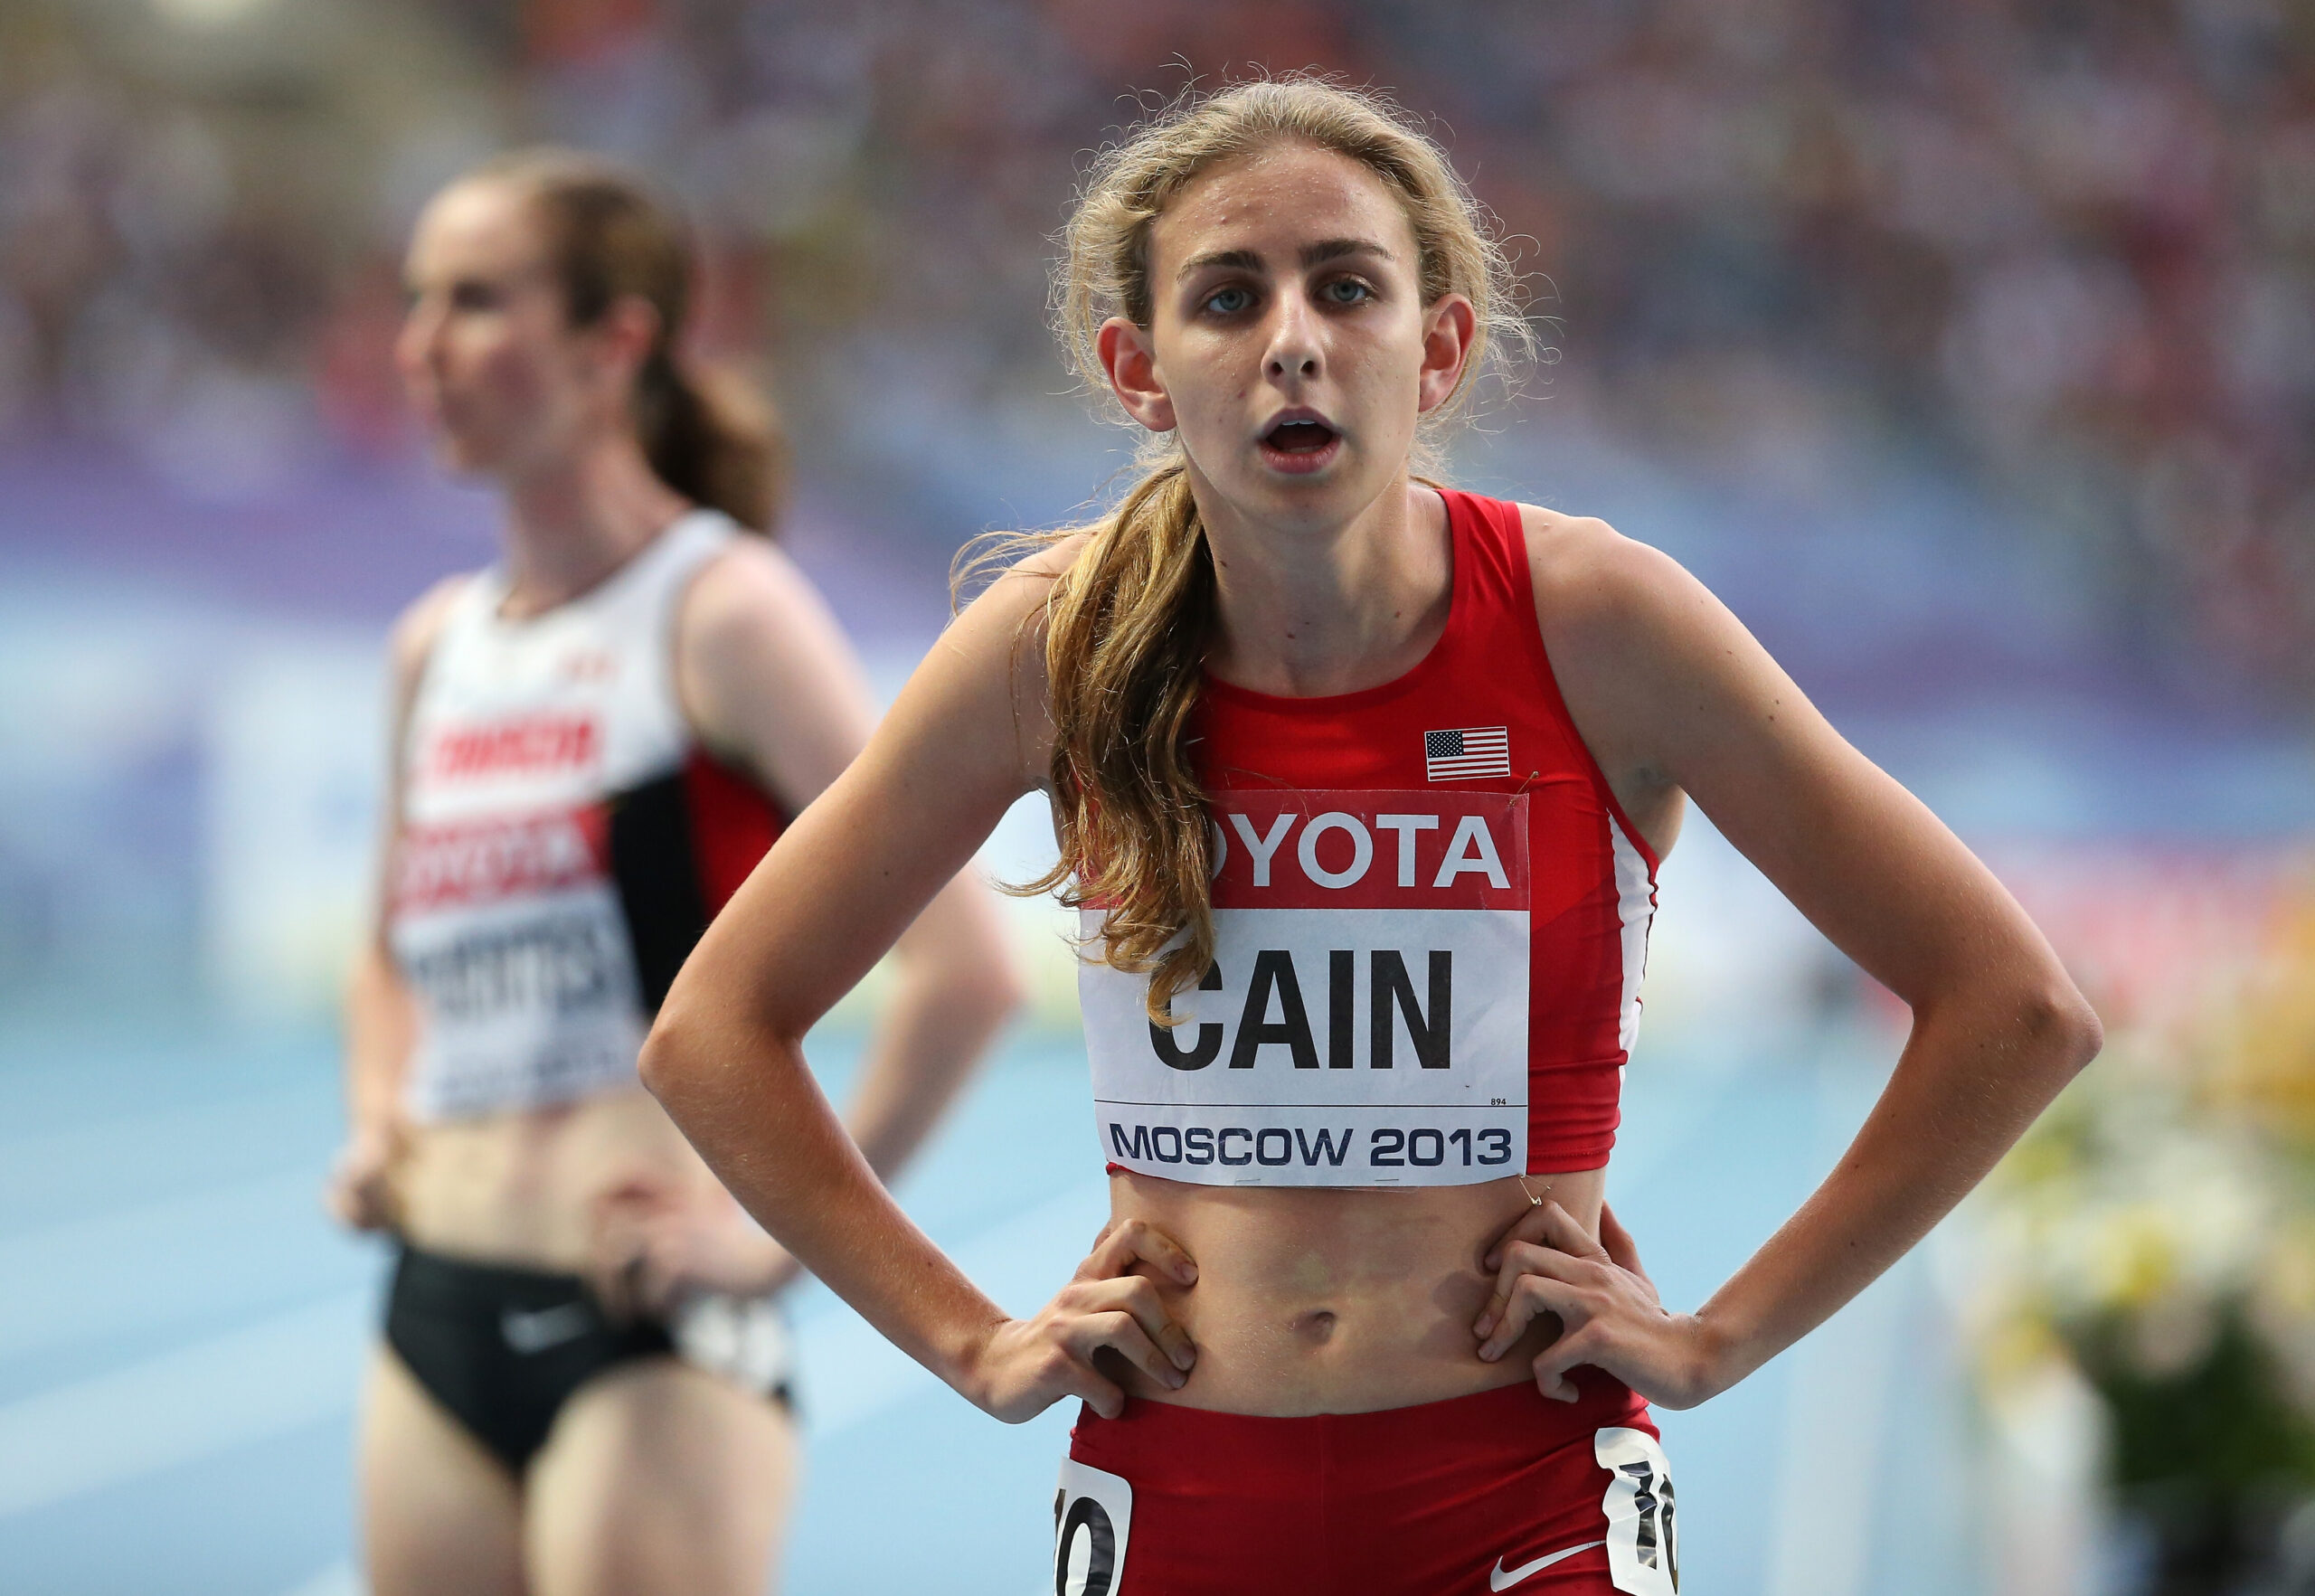 <i>Christian Petersen/Getty Images Europe/Getty Images</i><br/>Mary Cain after the women's 1